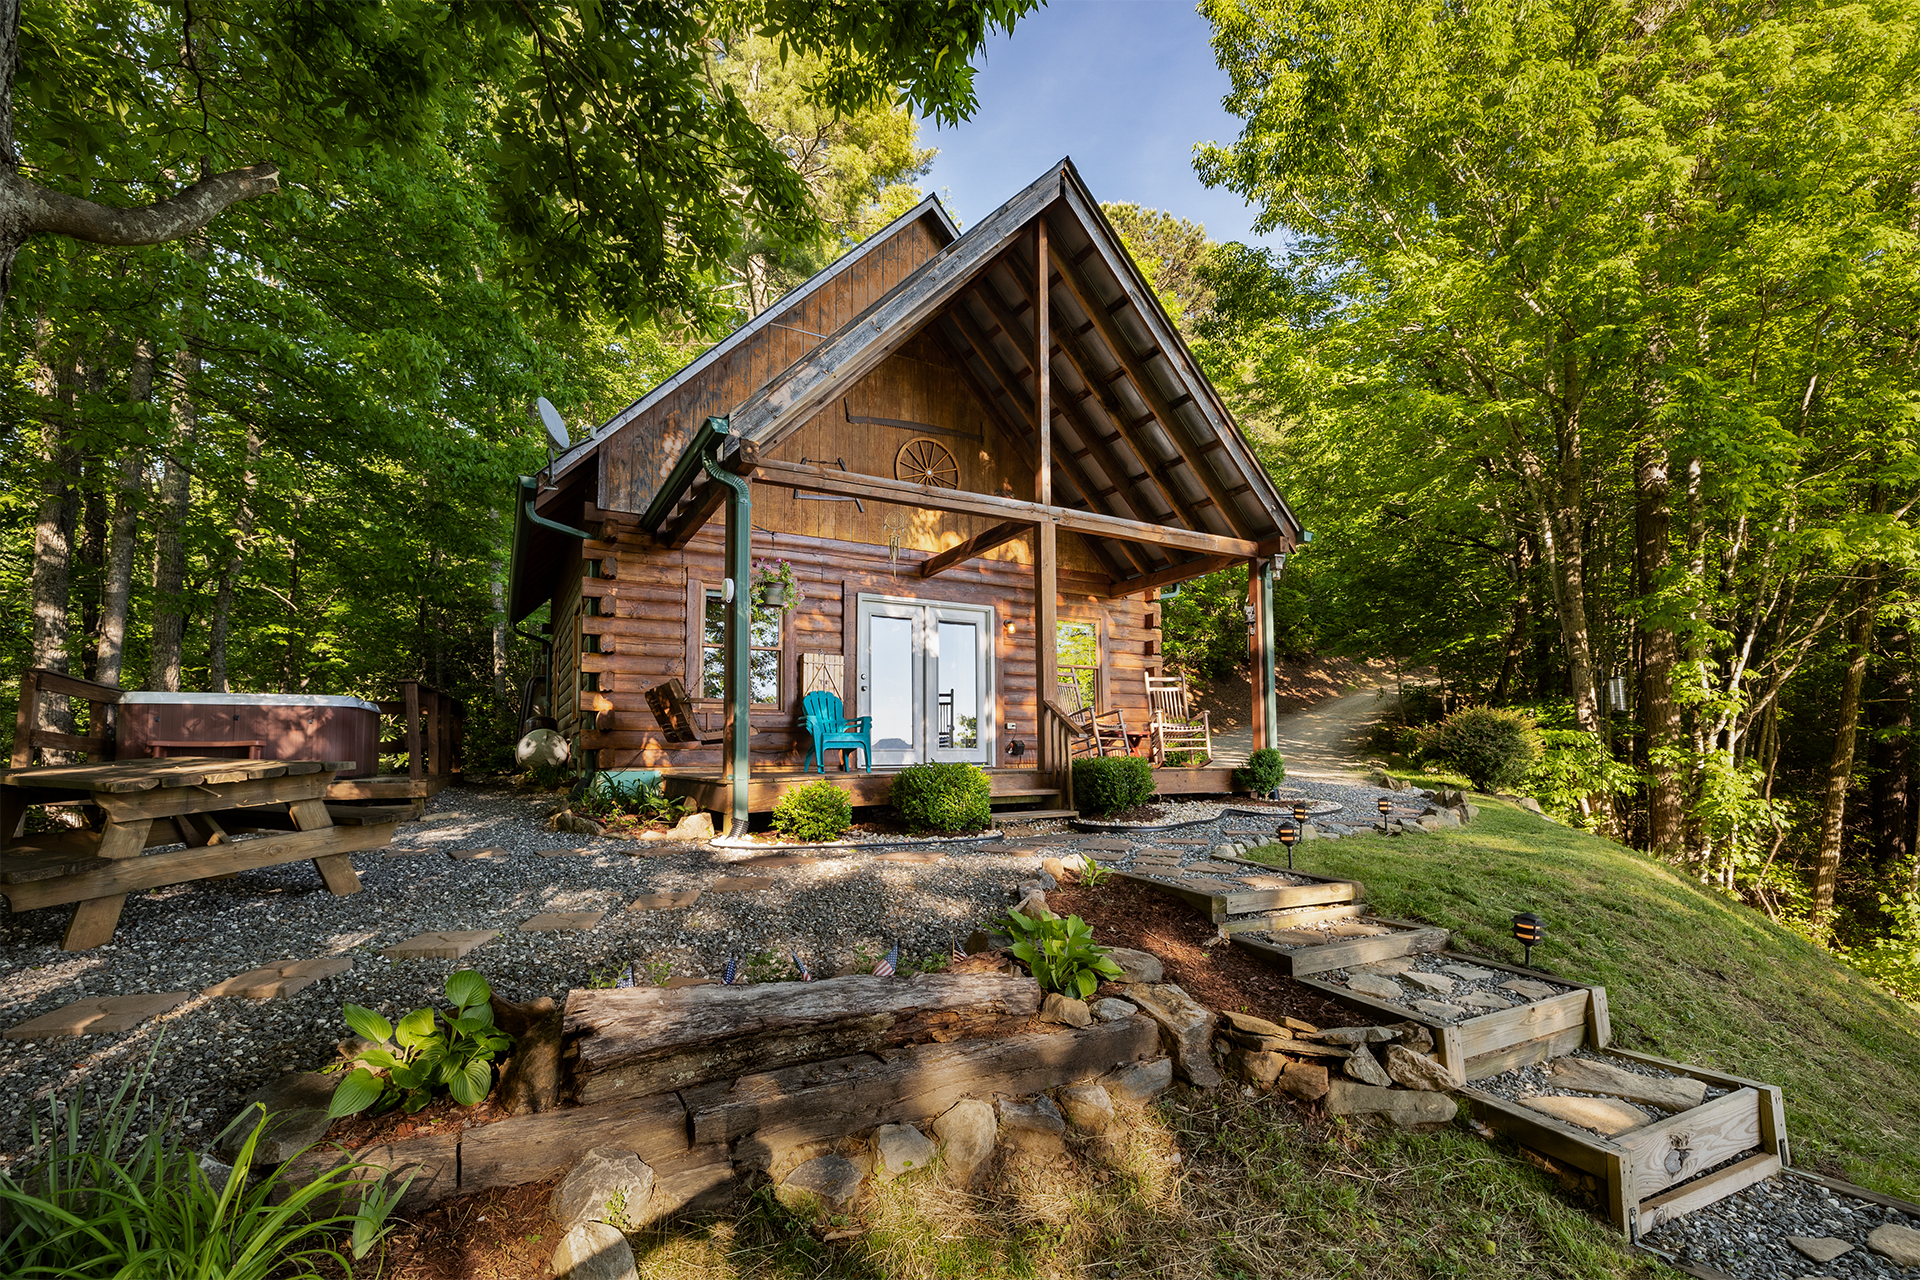 hickory nc old rock cabins boonerealestate sale log in for com lane blowing i